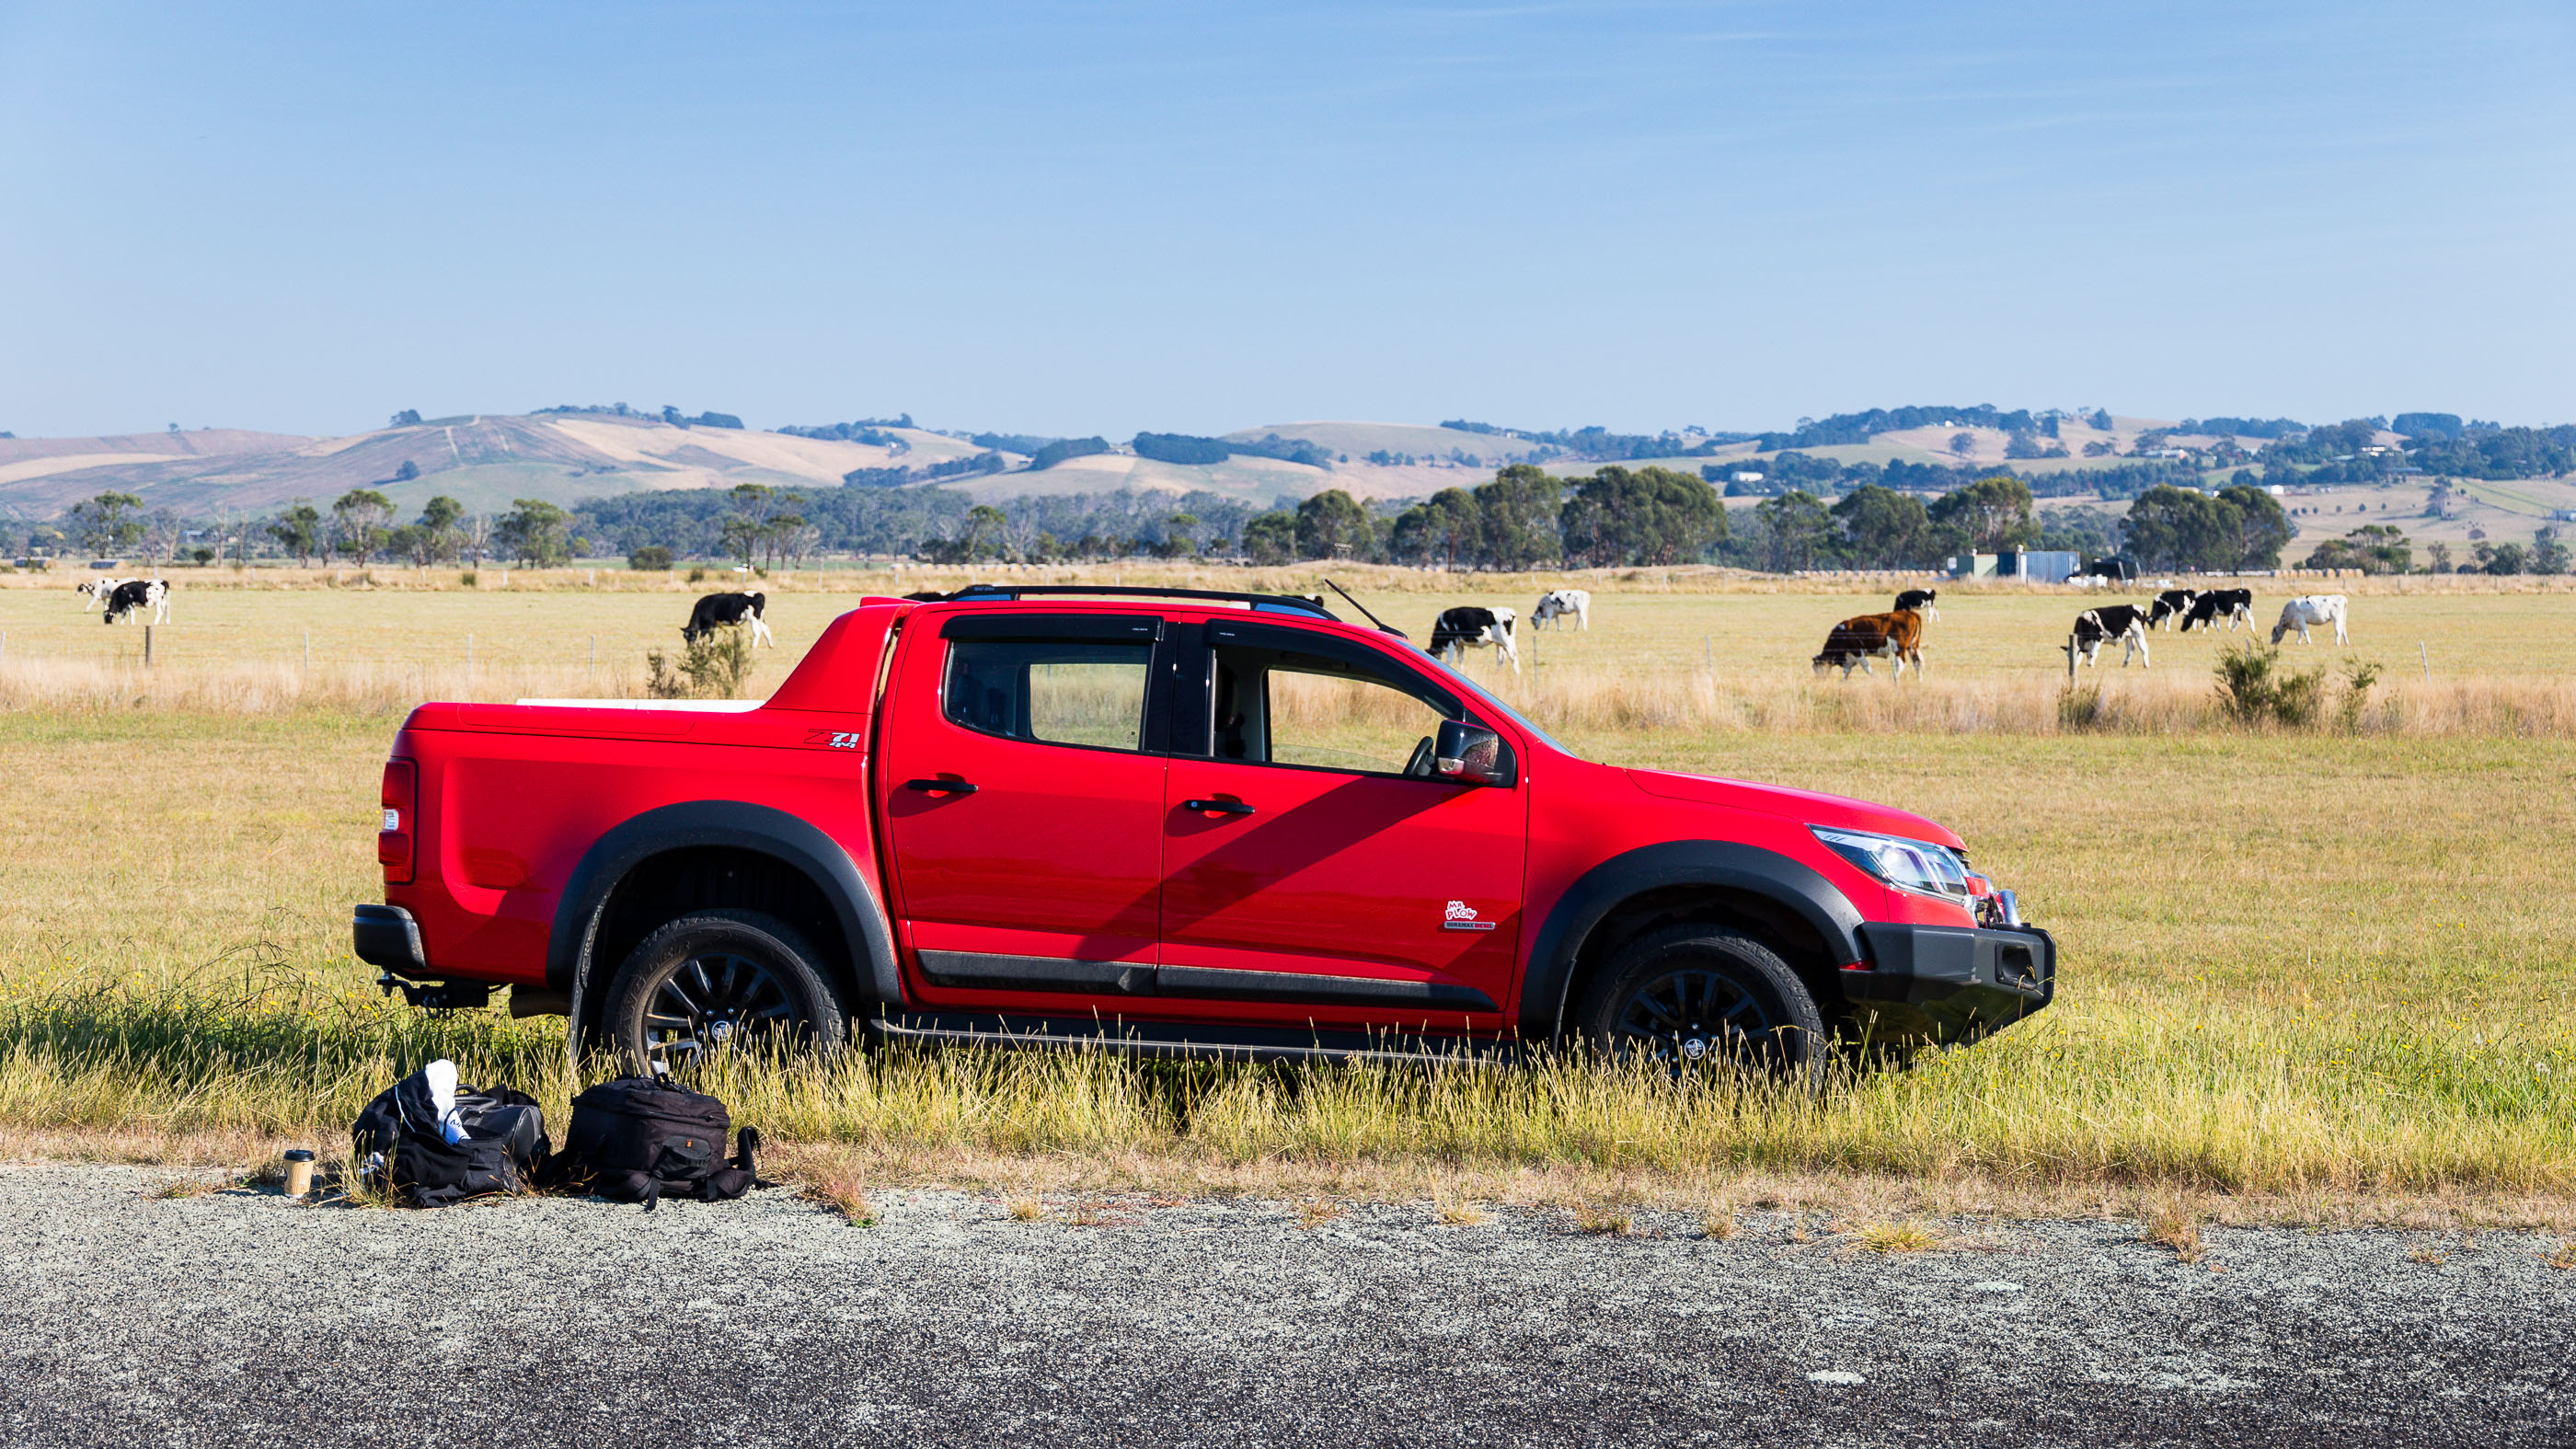 2017 holden colorado z71 review long term report two photos 1 of 29. Black Bedroom Furniture Sets. Home Design Ideas